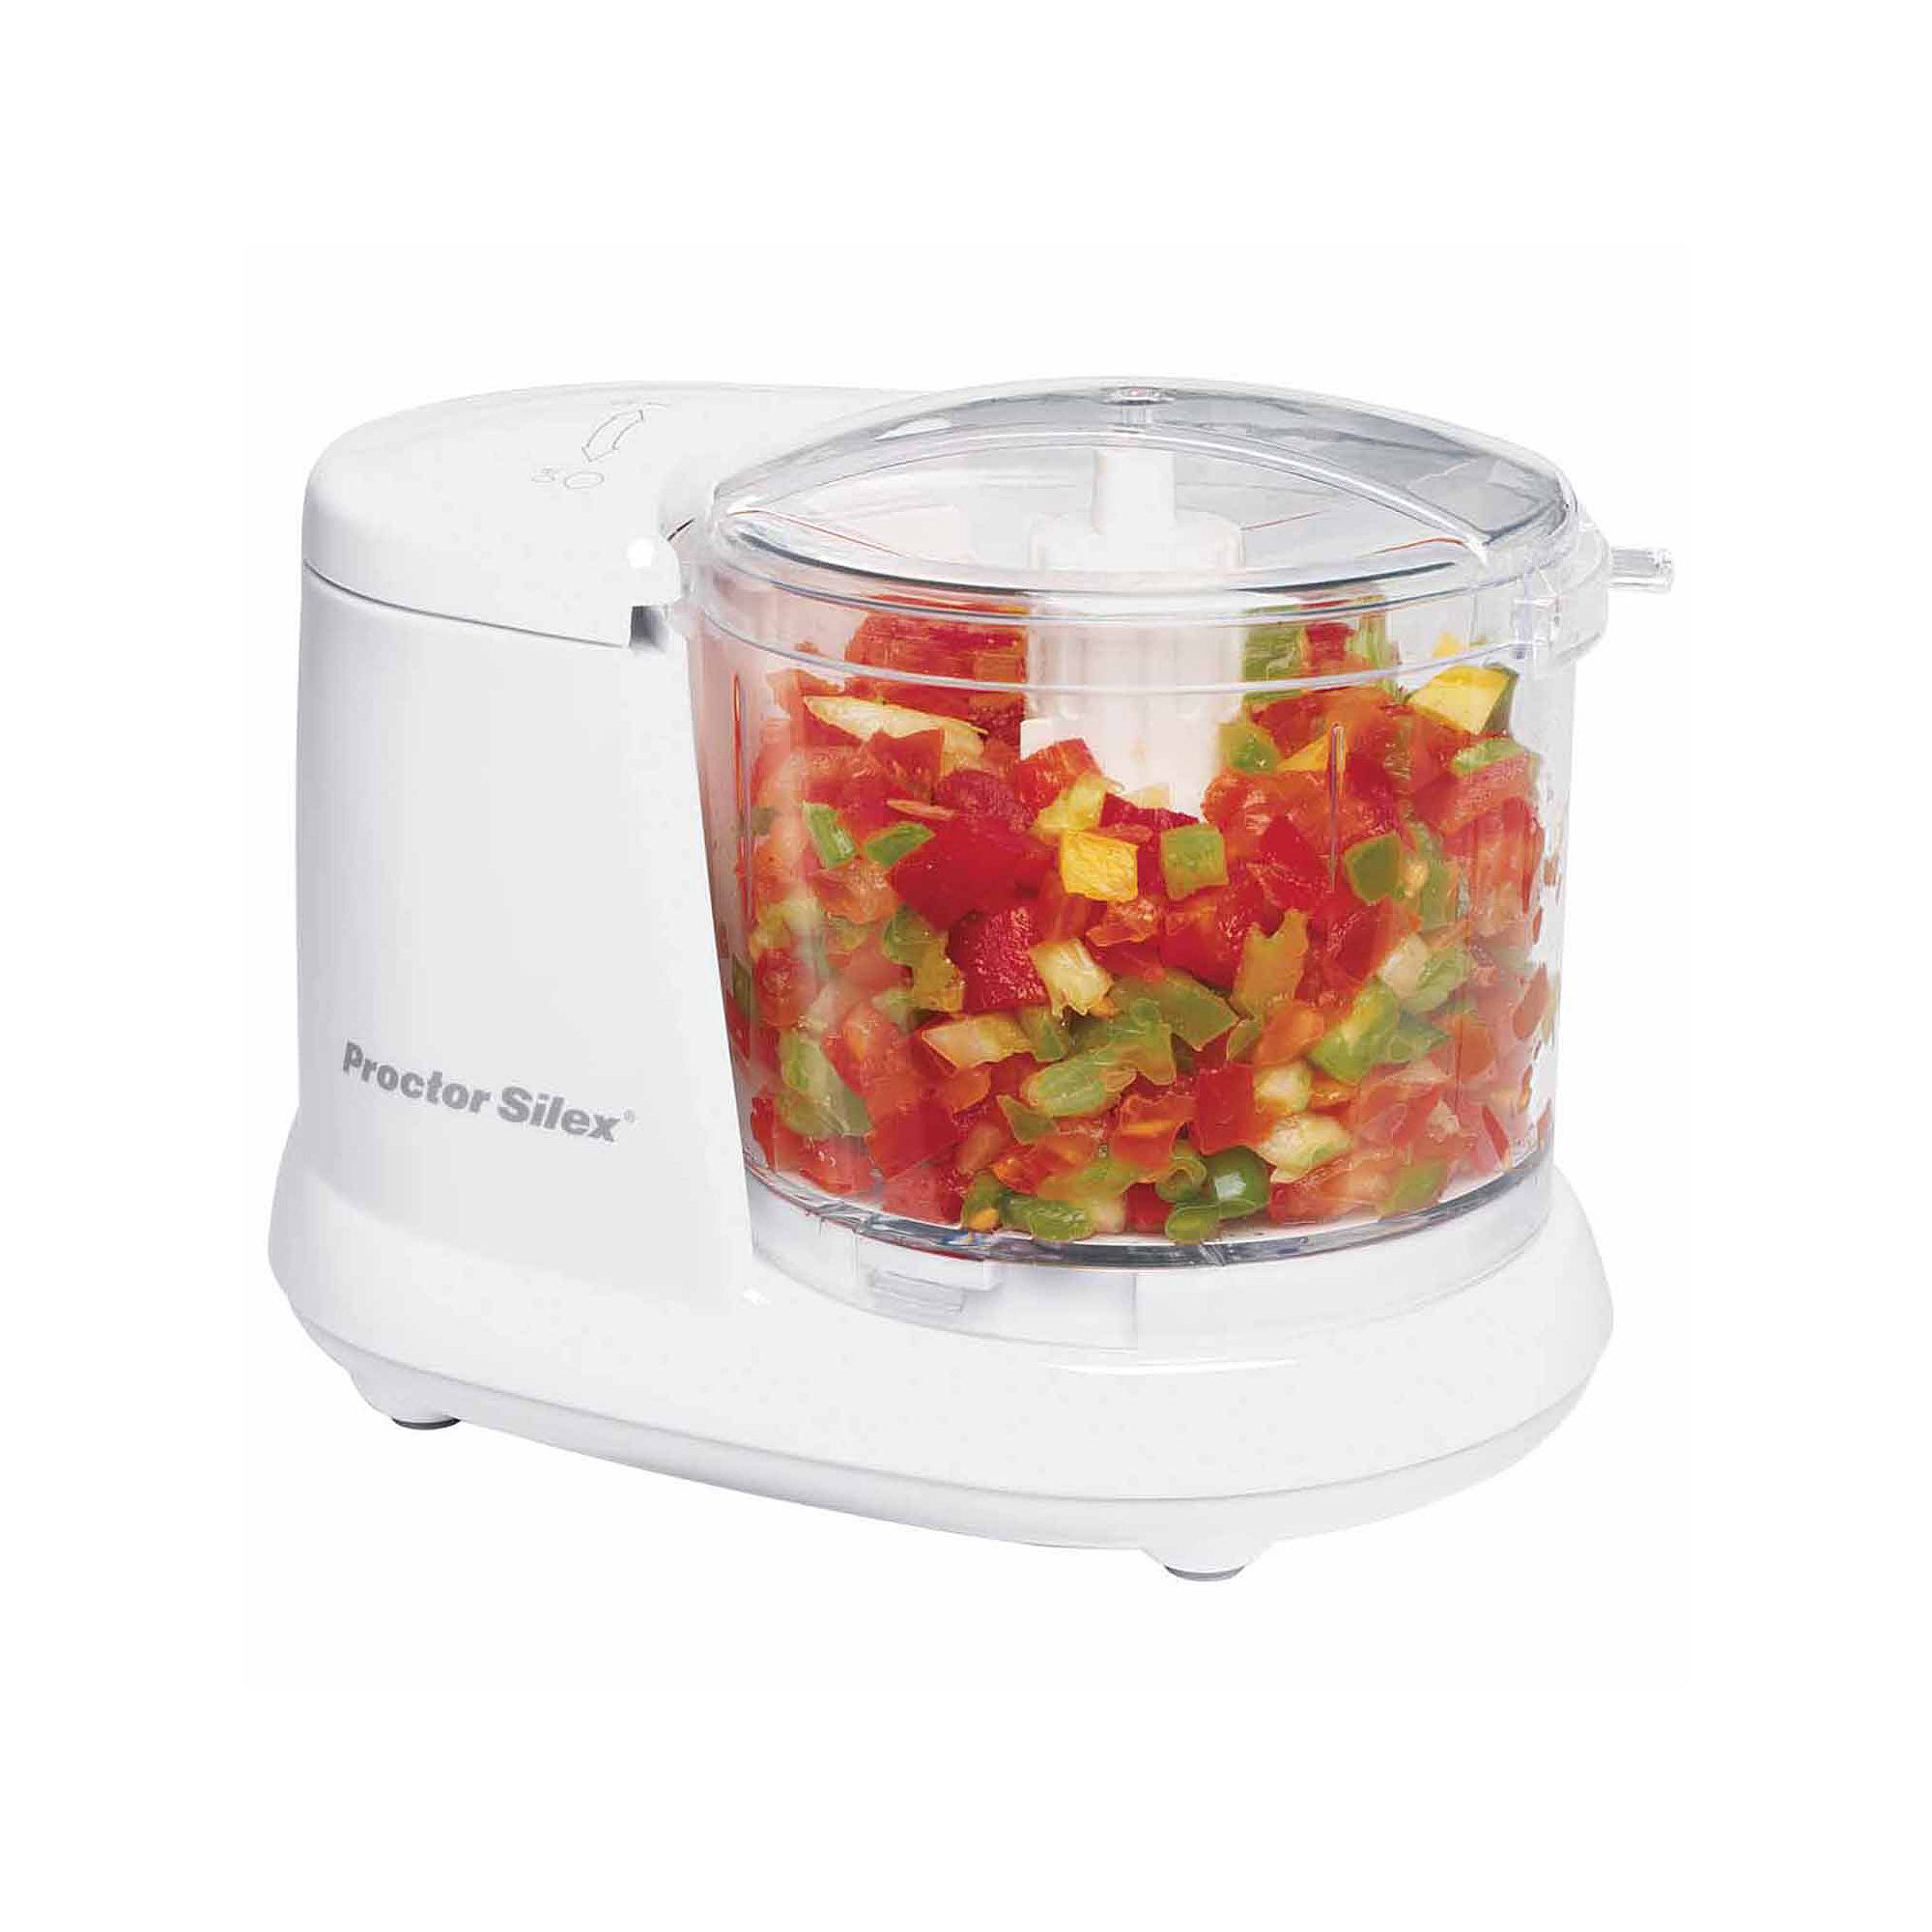 Proctor Silex Food Chopper